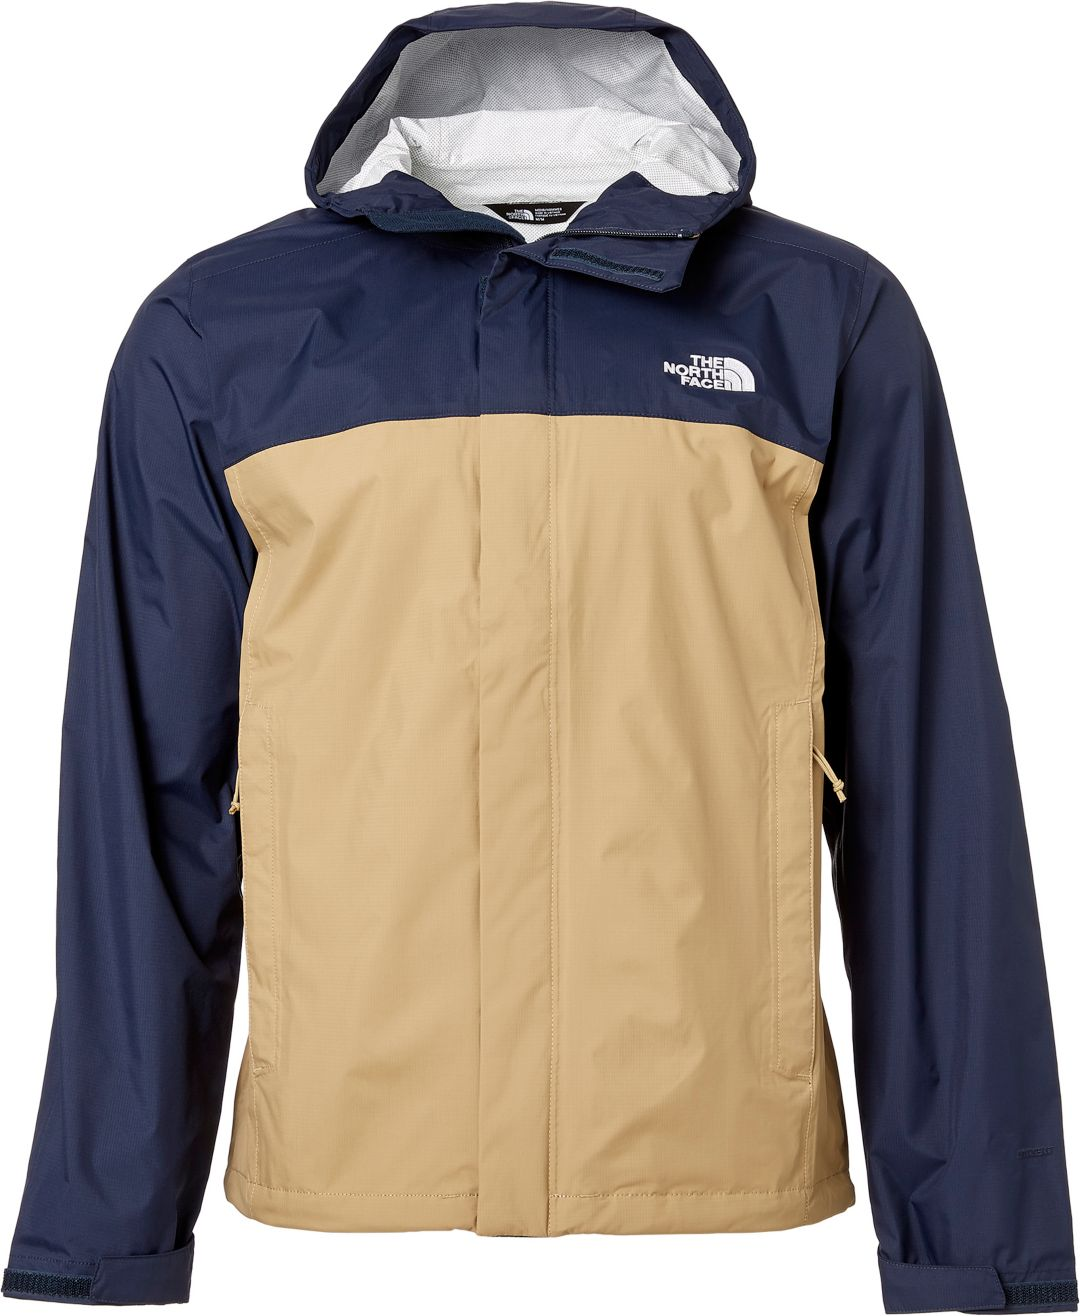 b5eecd1a2 The North Face Men's Venture 2 Jacket